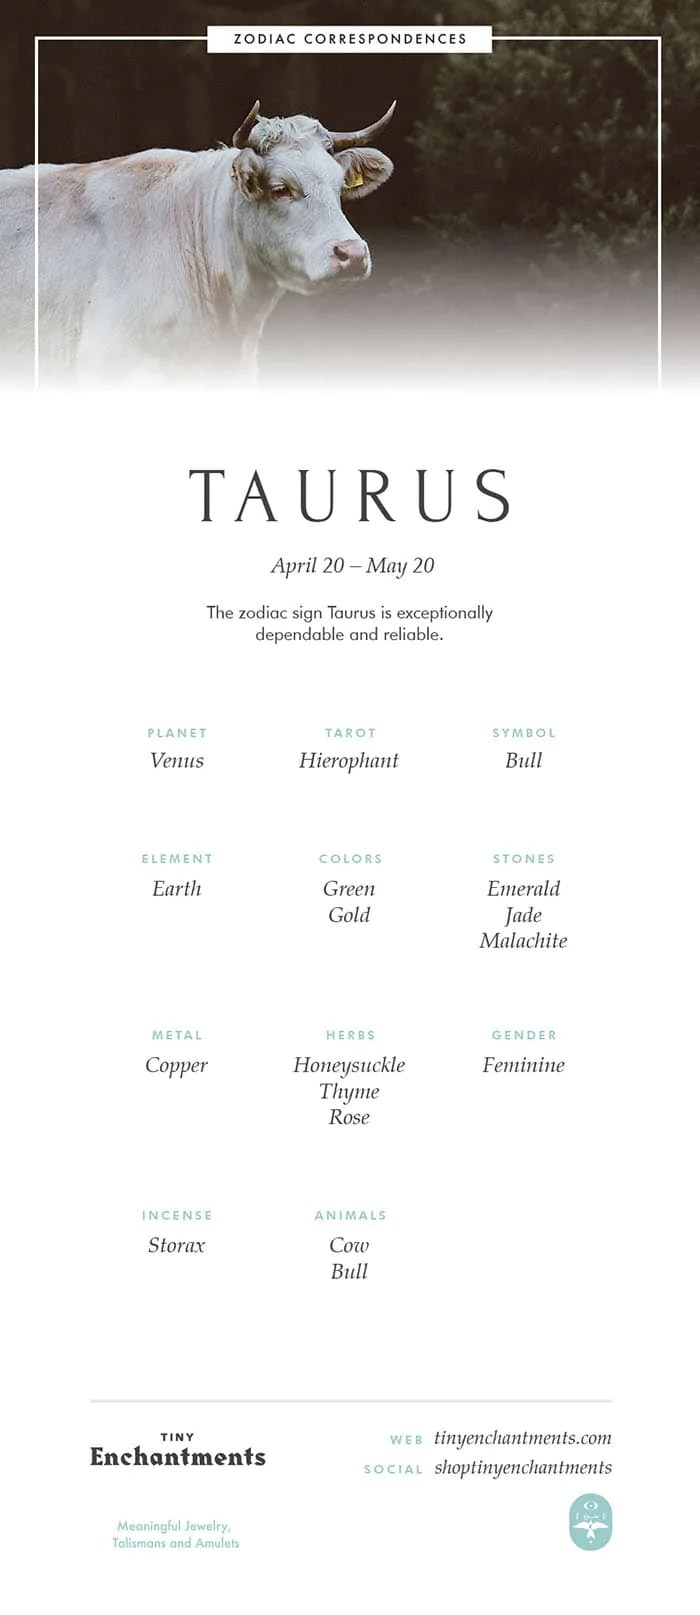 taurus zodiac sign correspondences